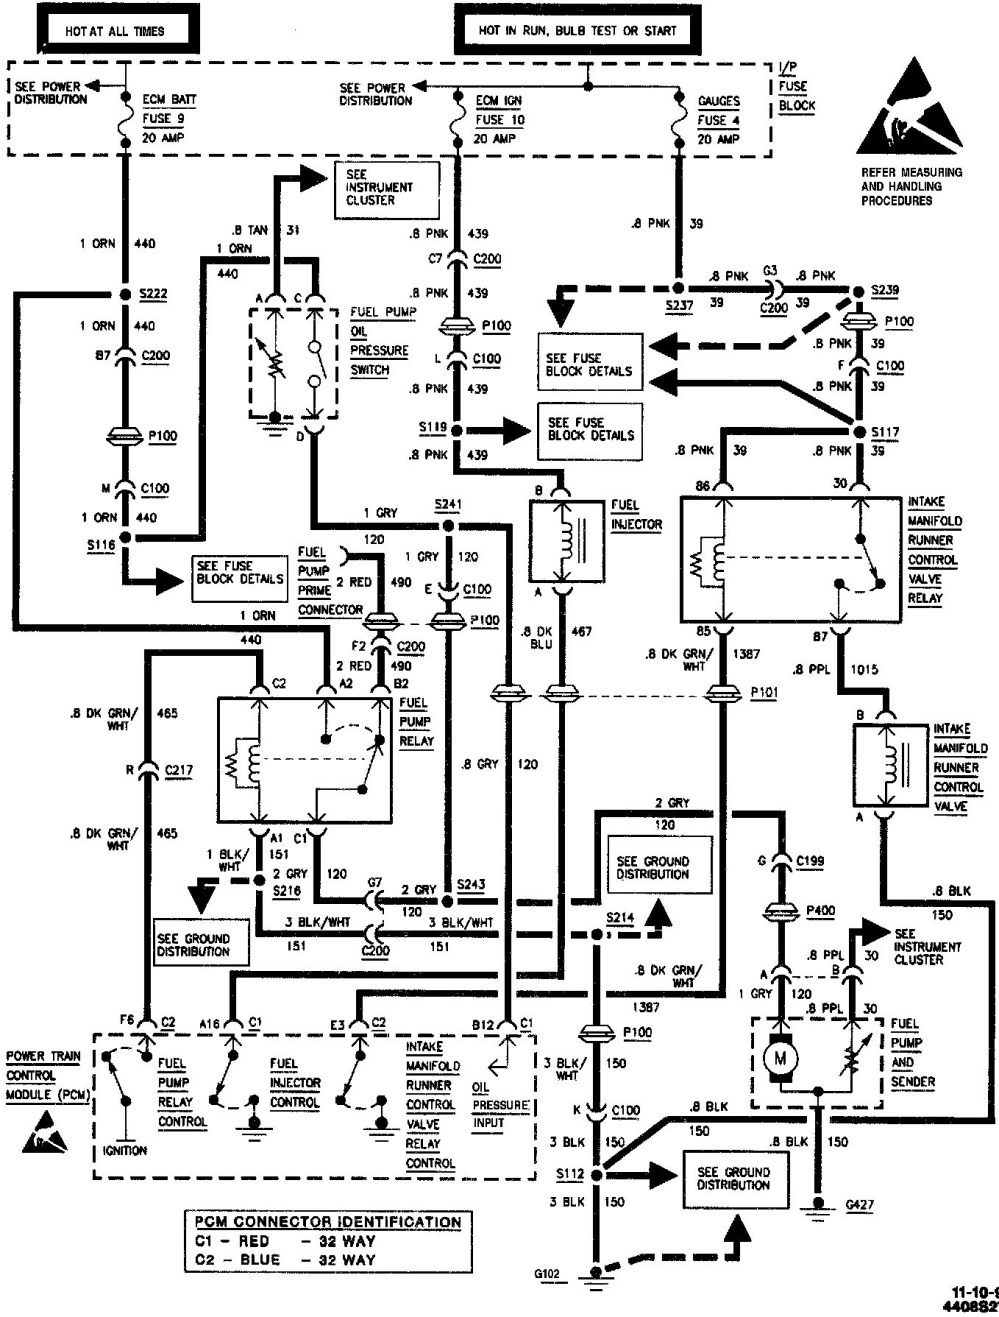 medium resolution of 91 blazer wiring schematic schema diagram database91 blazer wiring diagram schema diagram database 91 blazer wiring